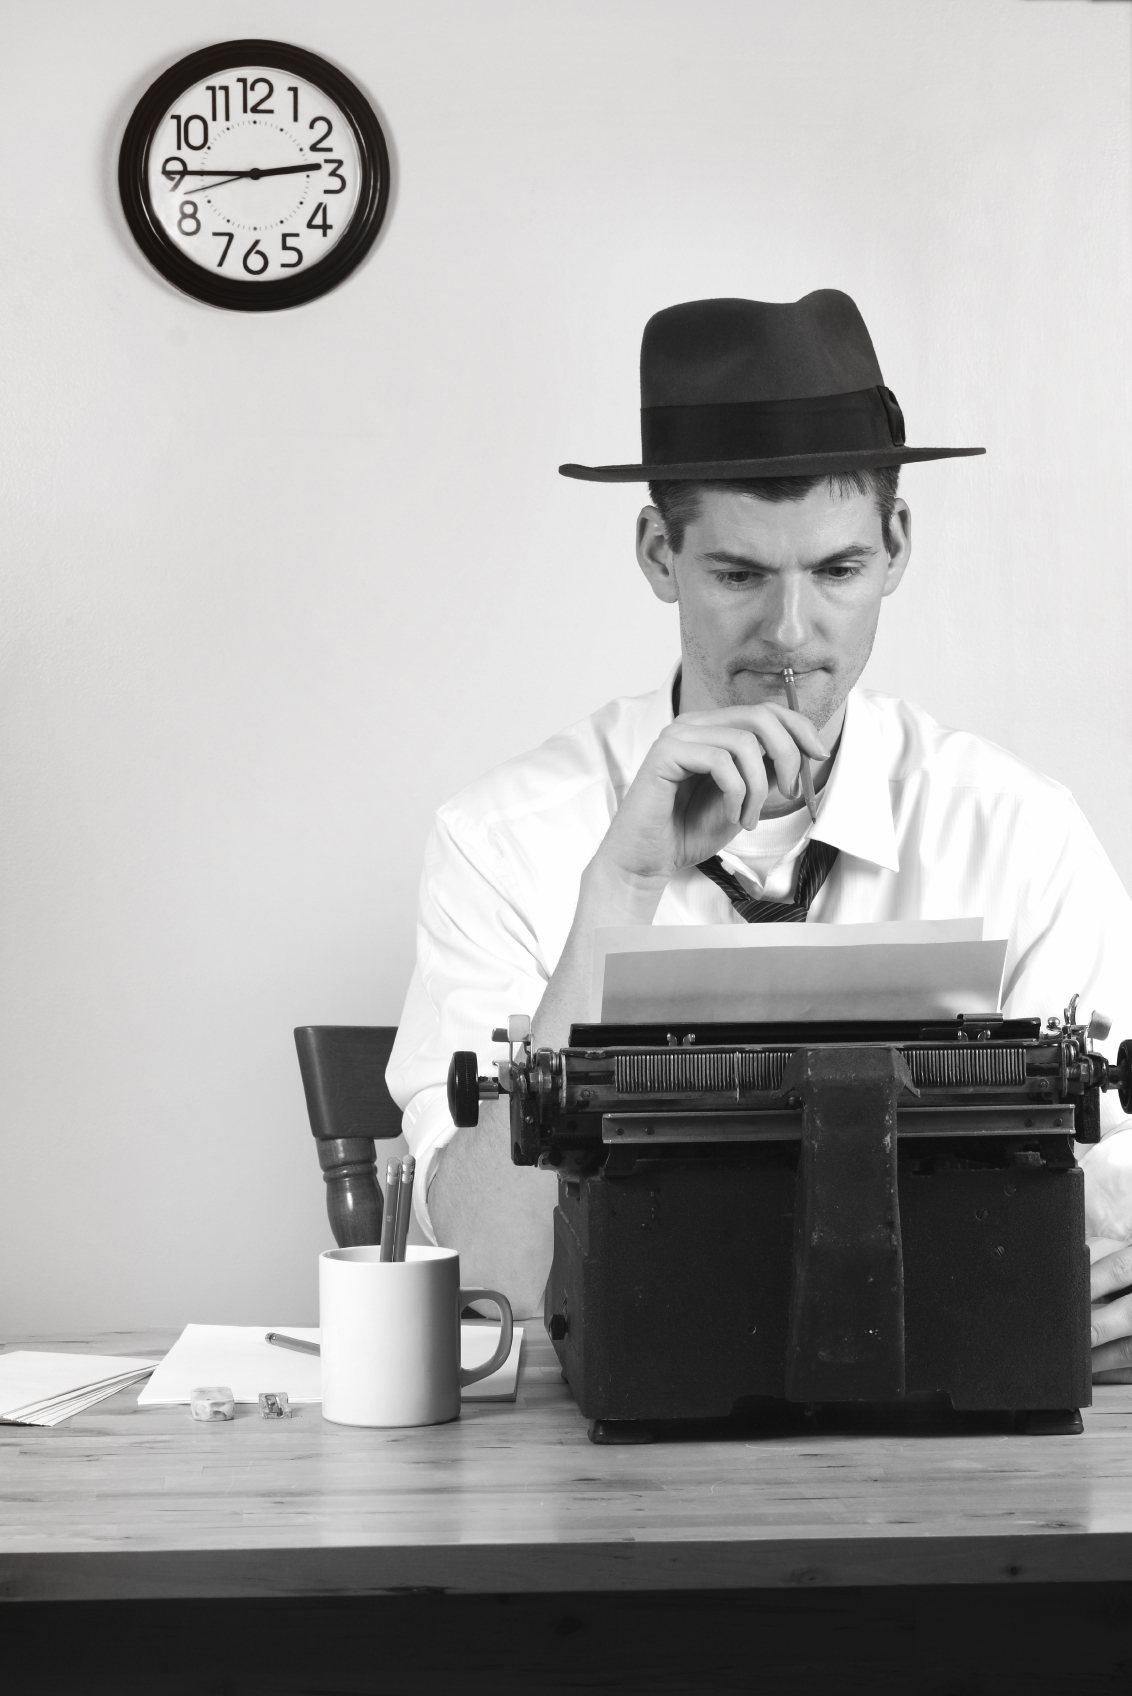 News reporter or journalist at a typewriter with clock on wall